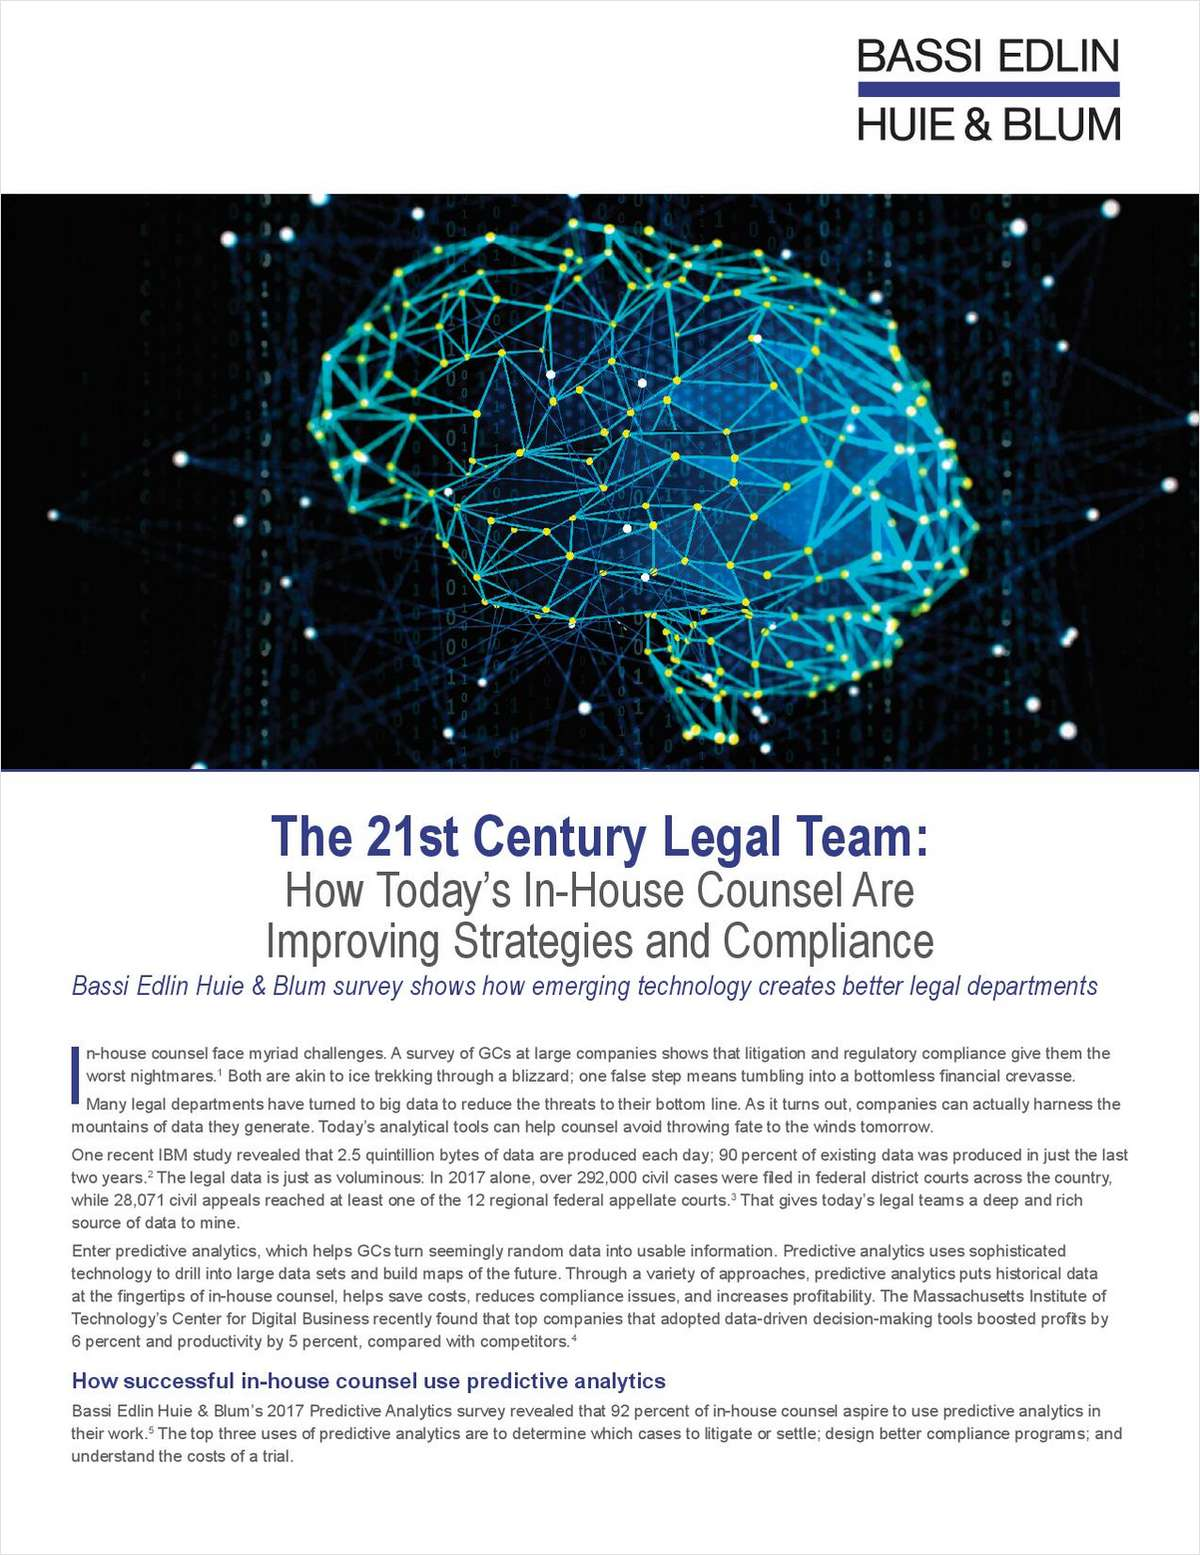 How Today's In-House Counsel Are Improving Strategies and Compliance